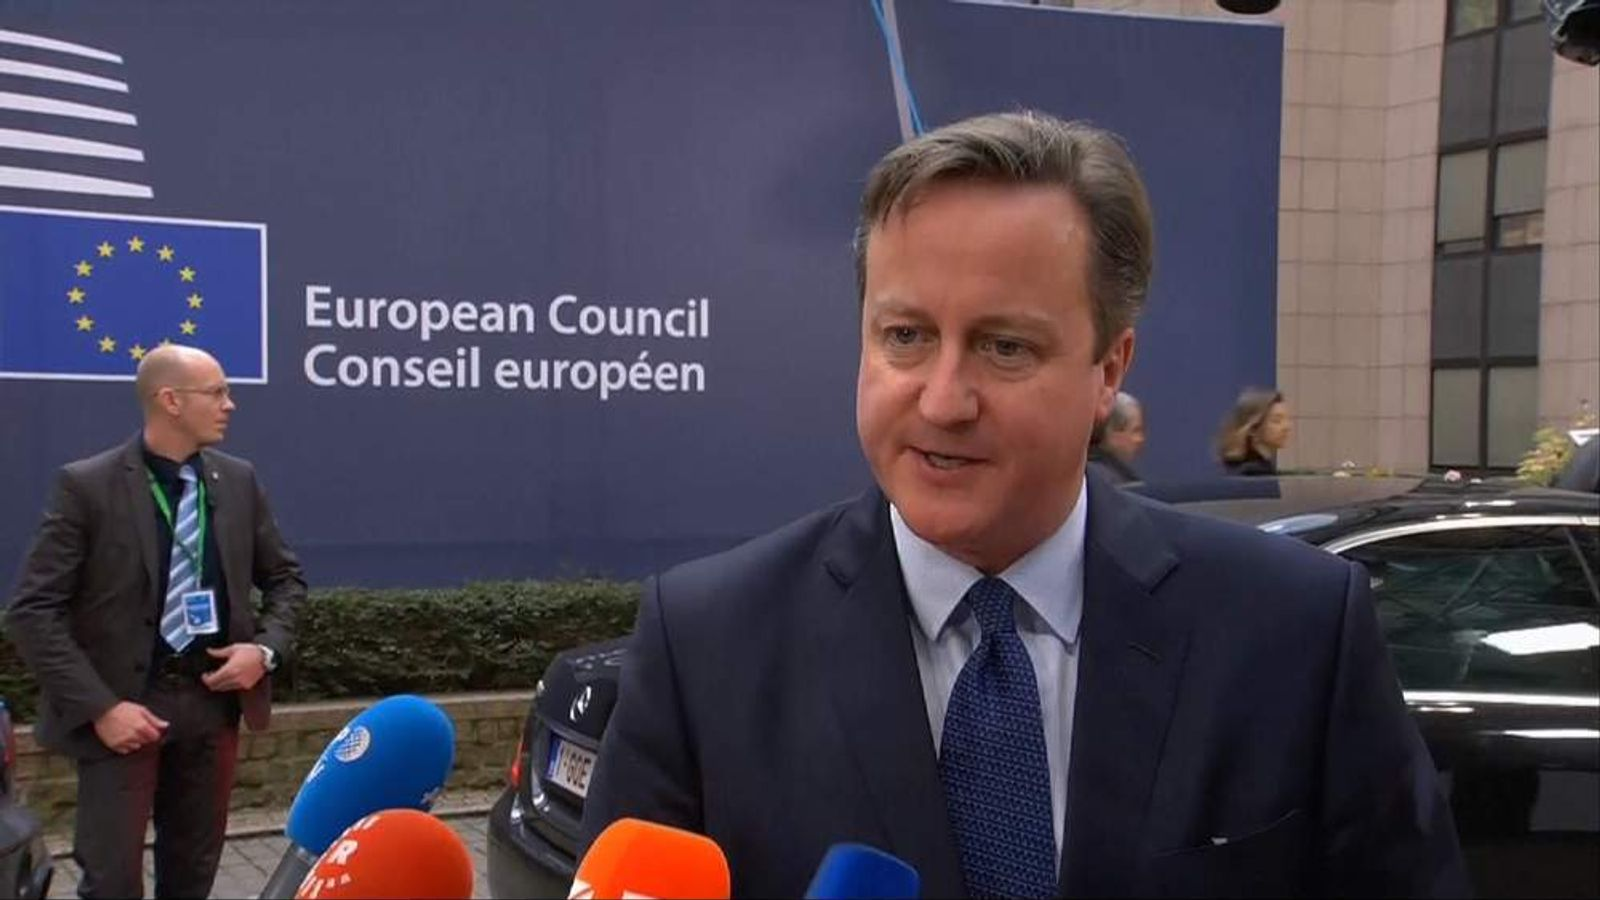 David Cameron outside European Council HQ in Brussels